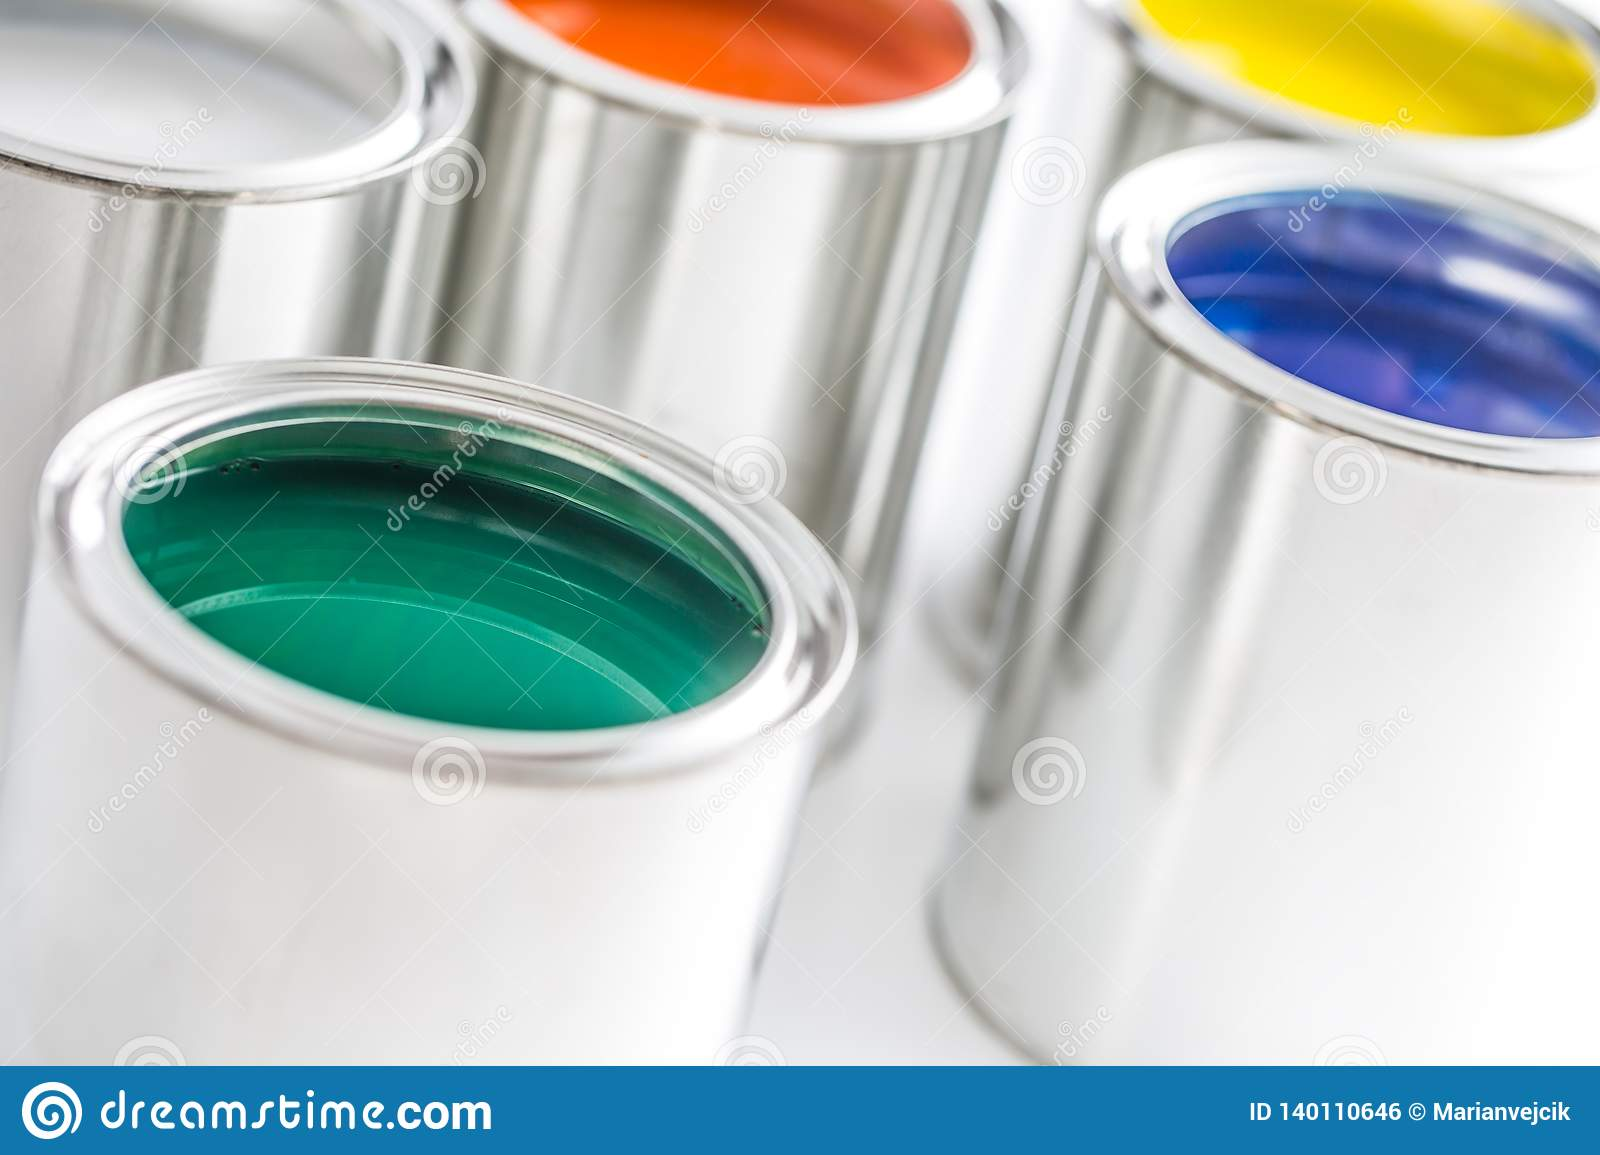 Full of multicolored paint cans on white table